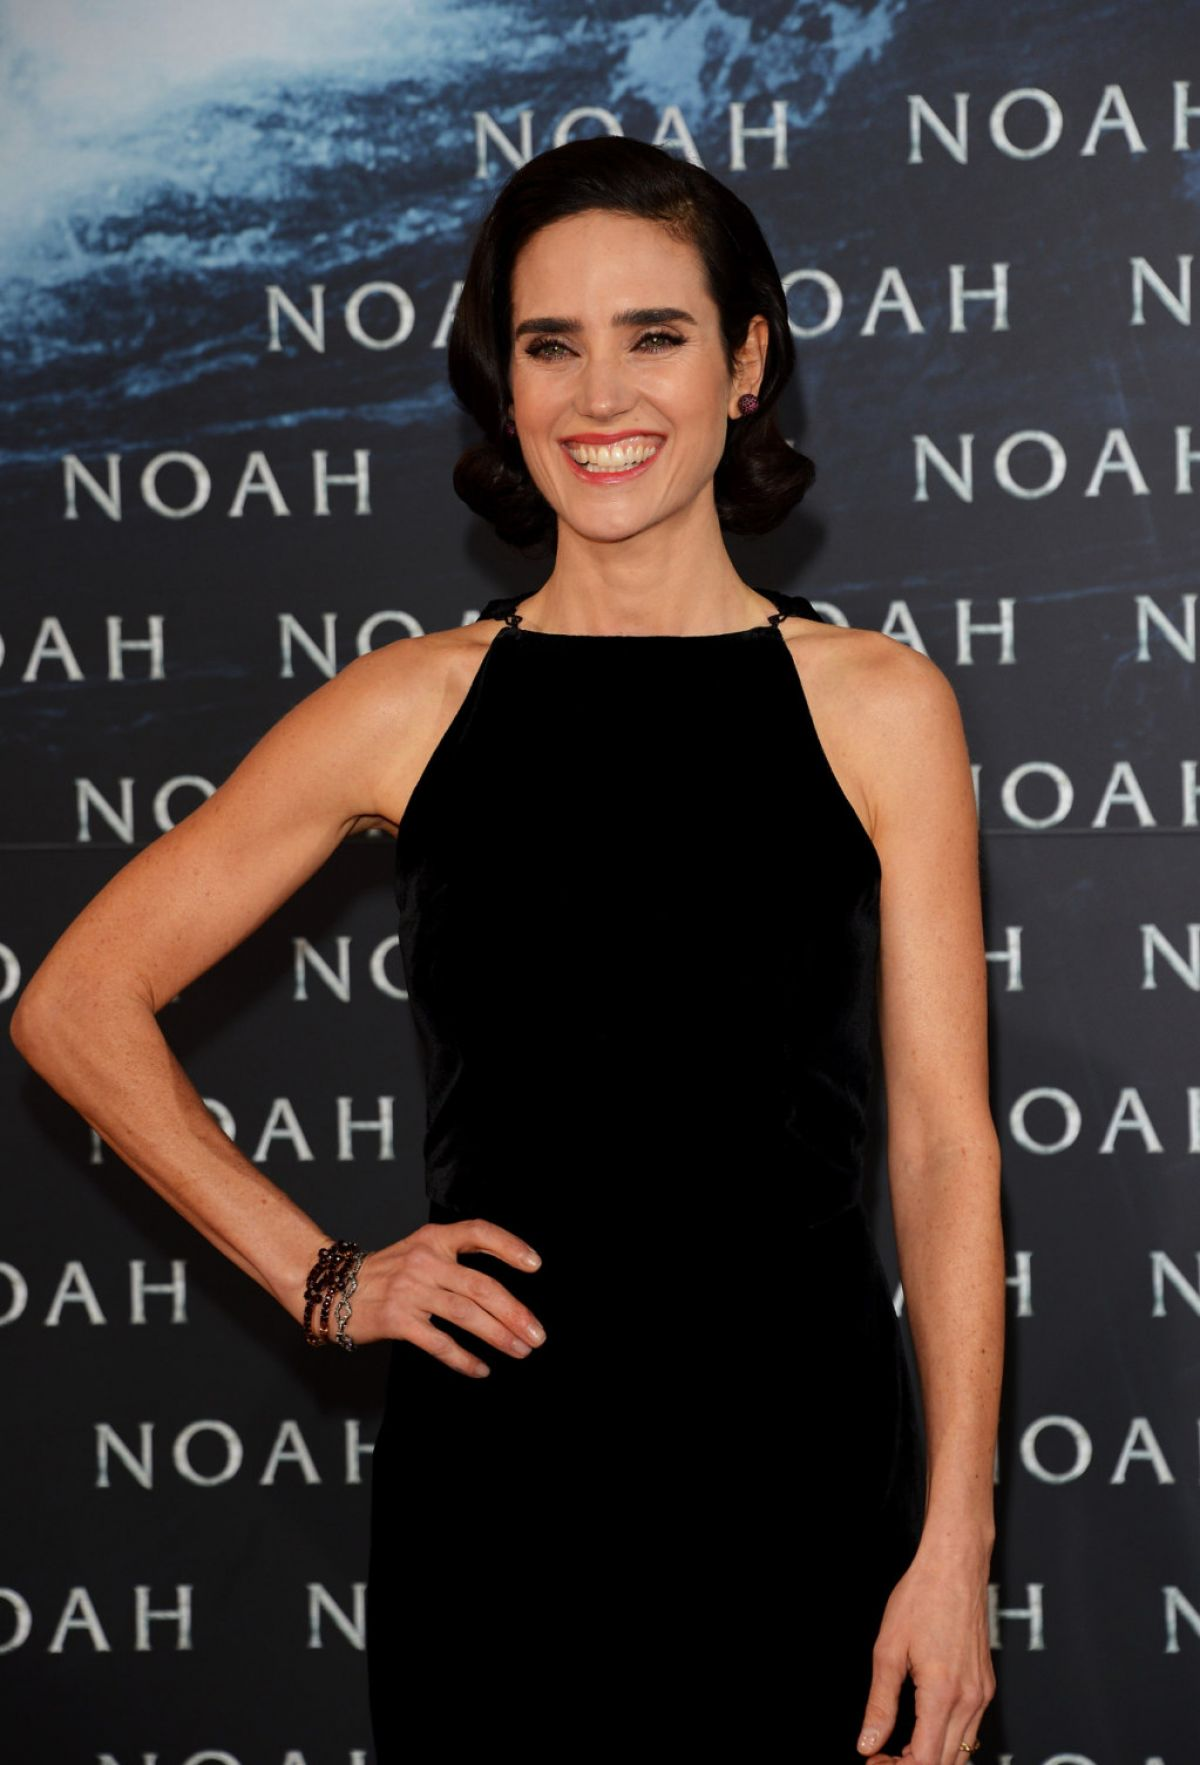 JENNIFER CONNELLY at Noah Premiere in Berlin